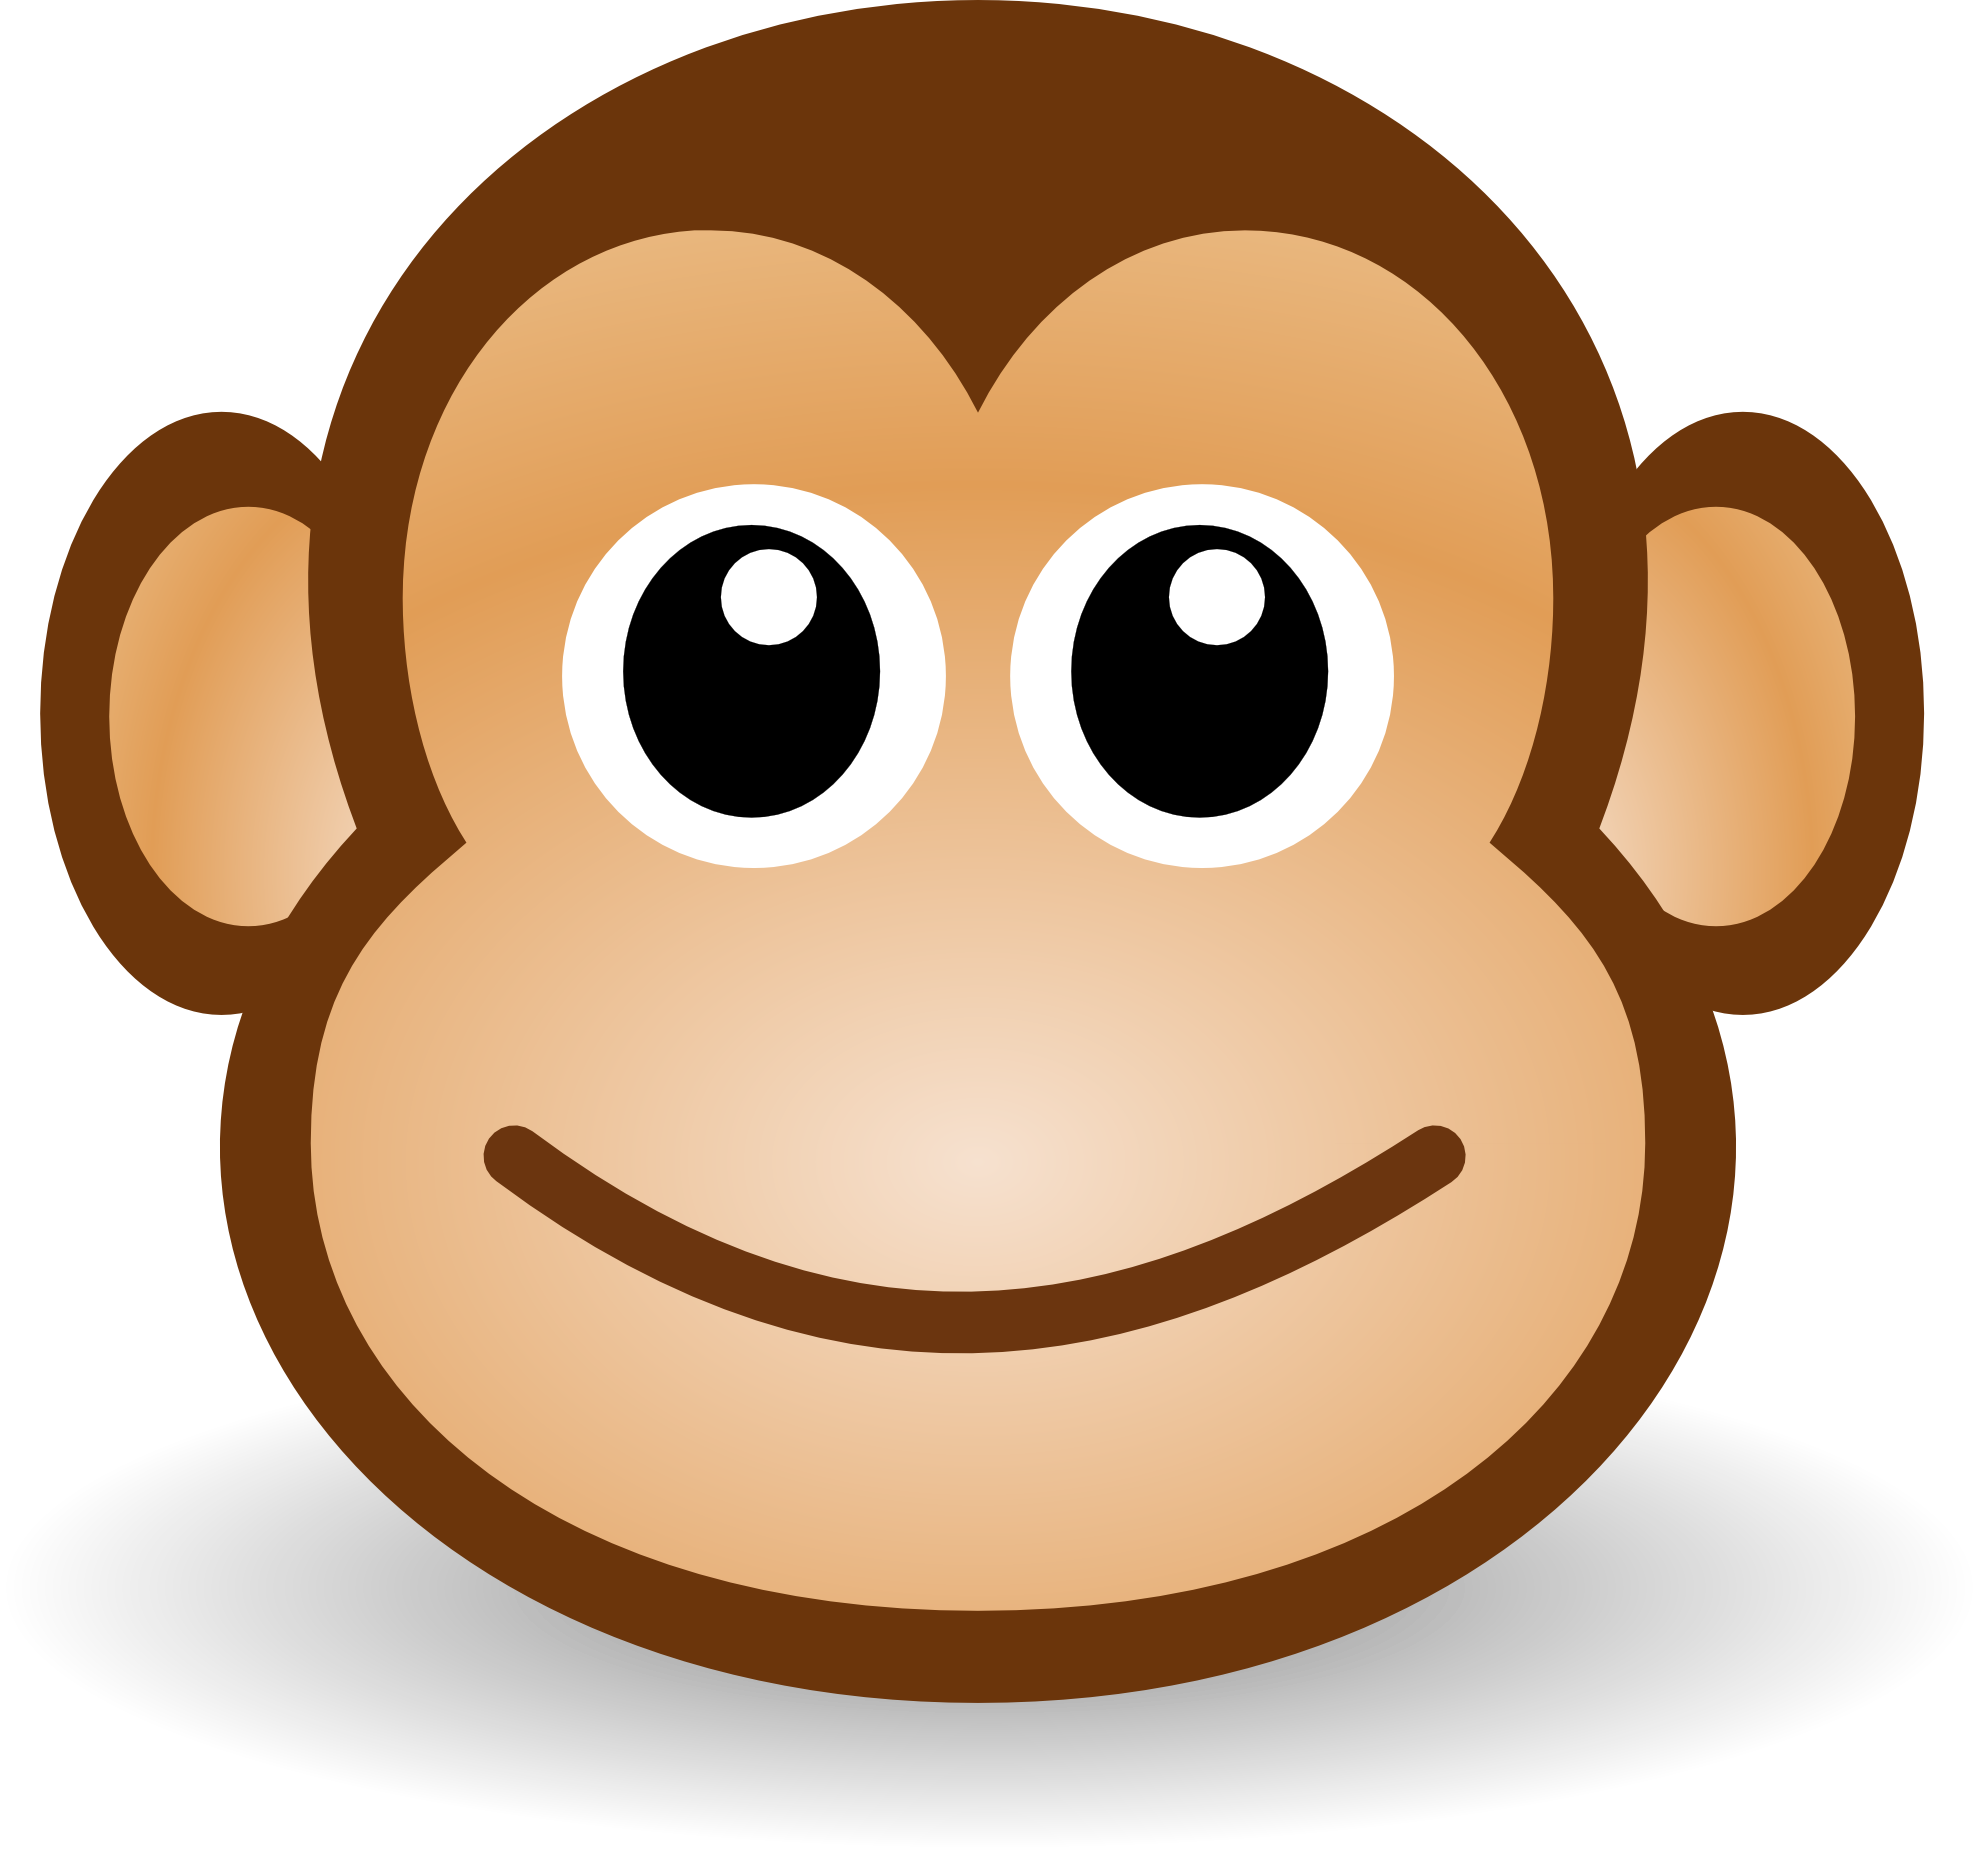 3 monkeys clipart faces svg black and white download Free Sad Monkey Face, Download Free Clip Art, Free Clip Art on ... svg black and white download